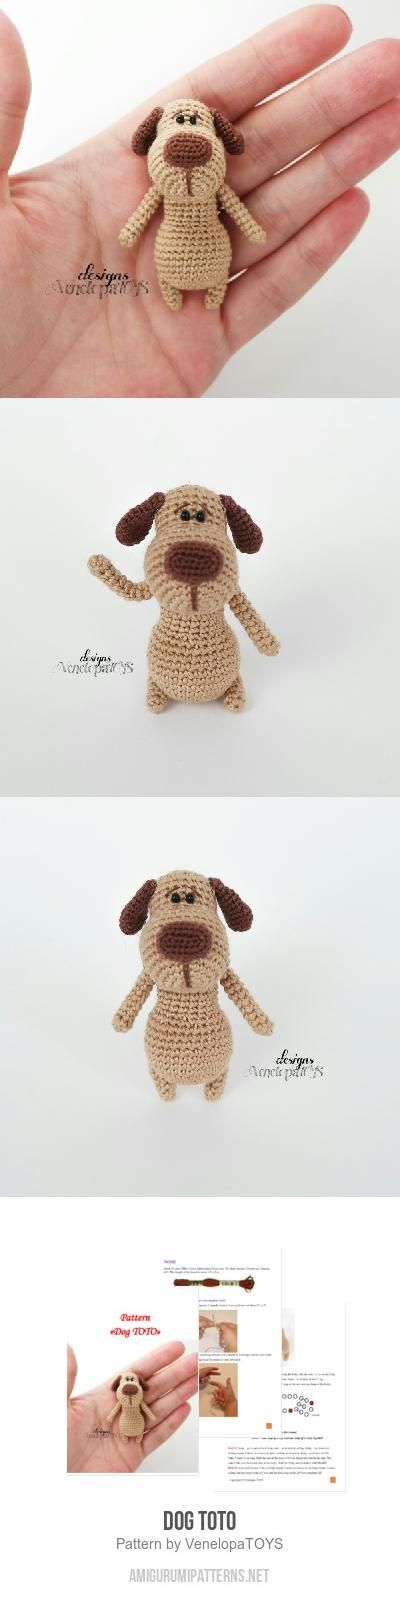 Dog TOTO amigurumi pattern | Ganchillo | Pinterest | Croché ...